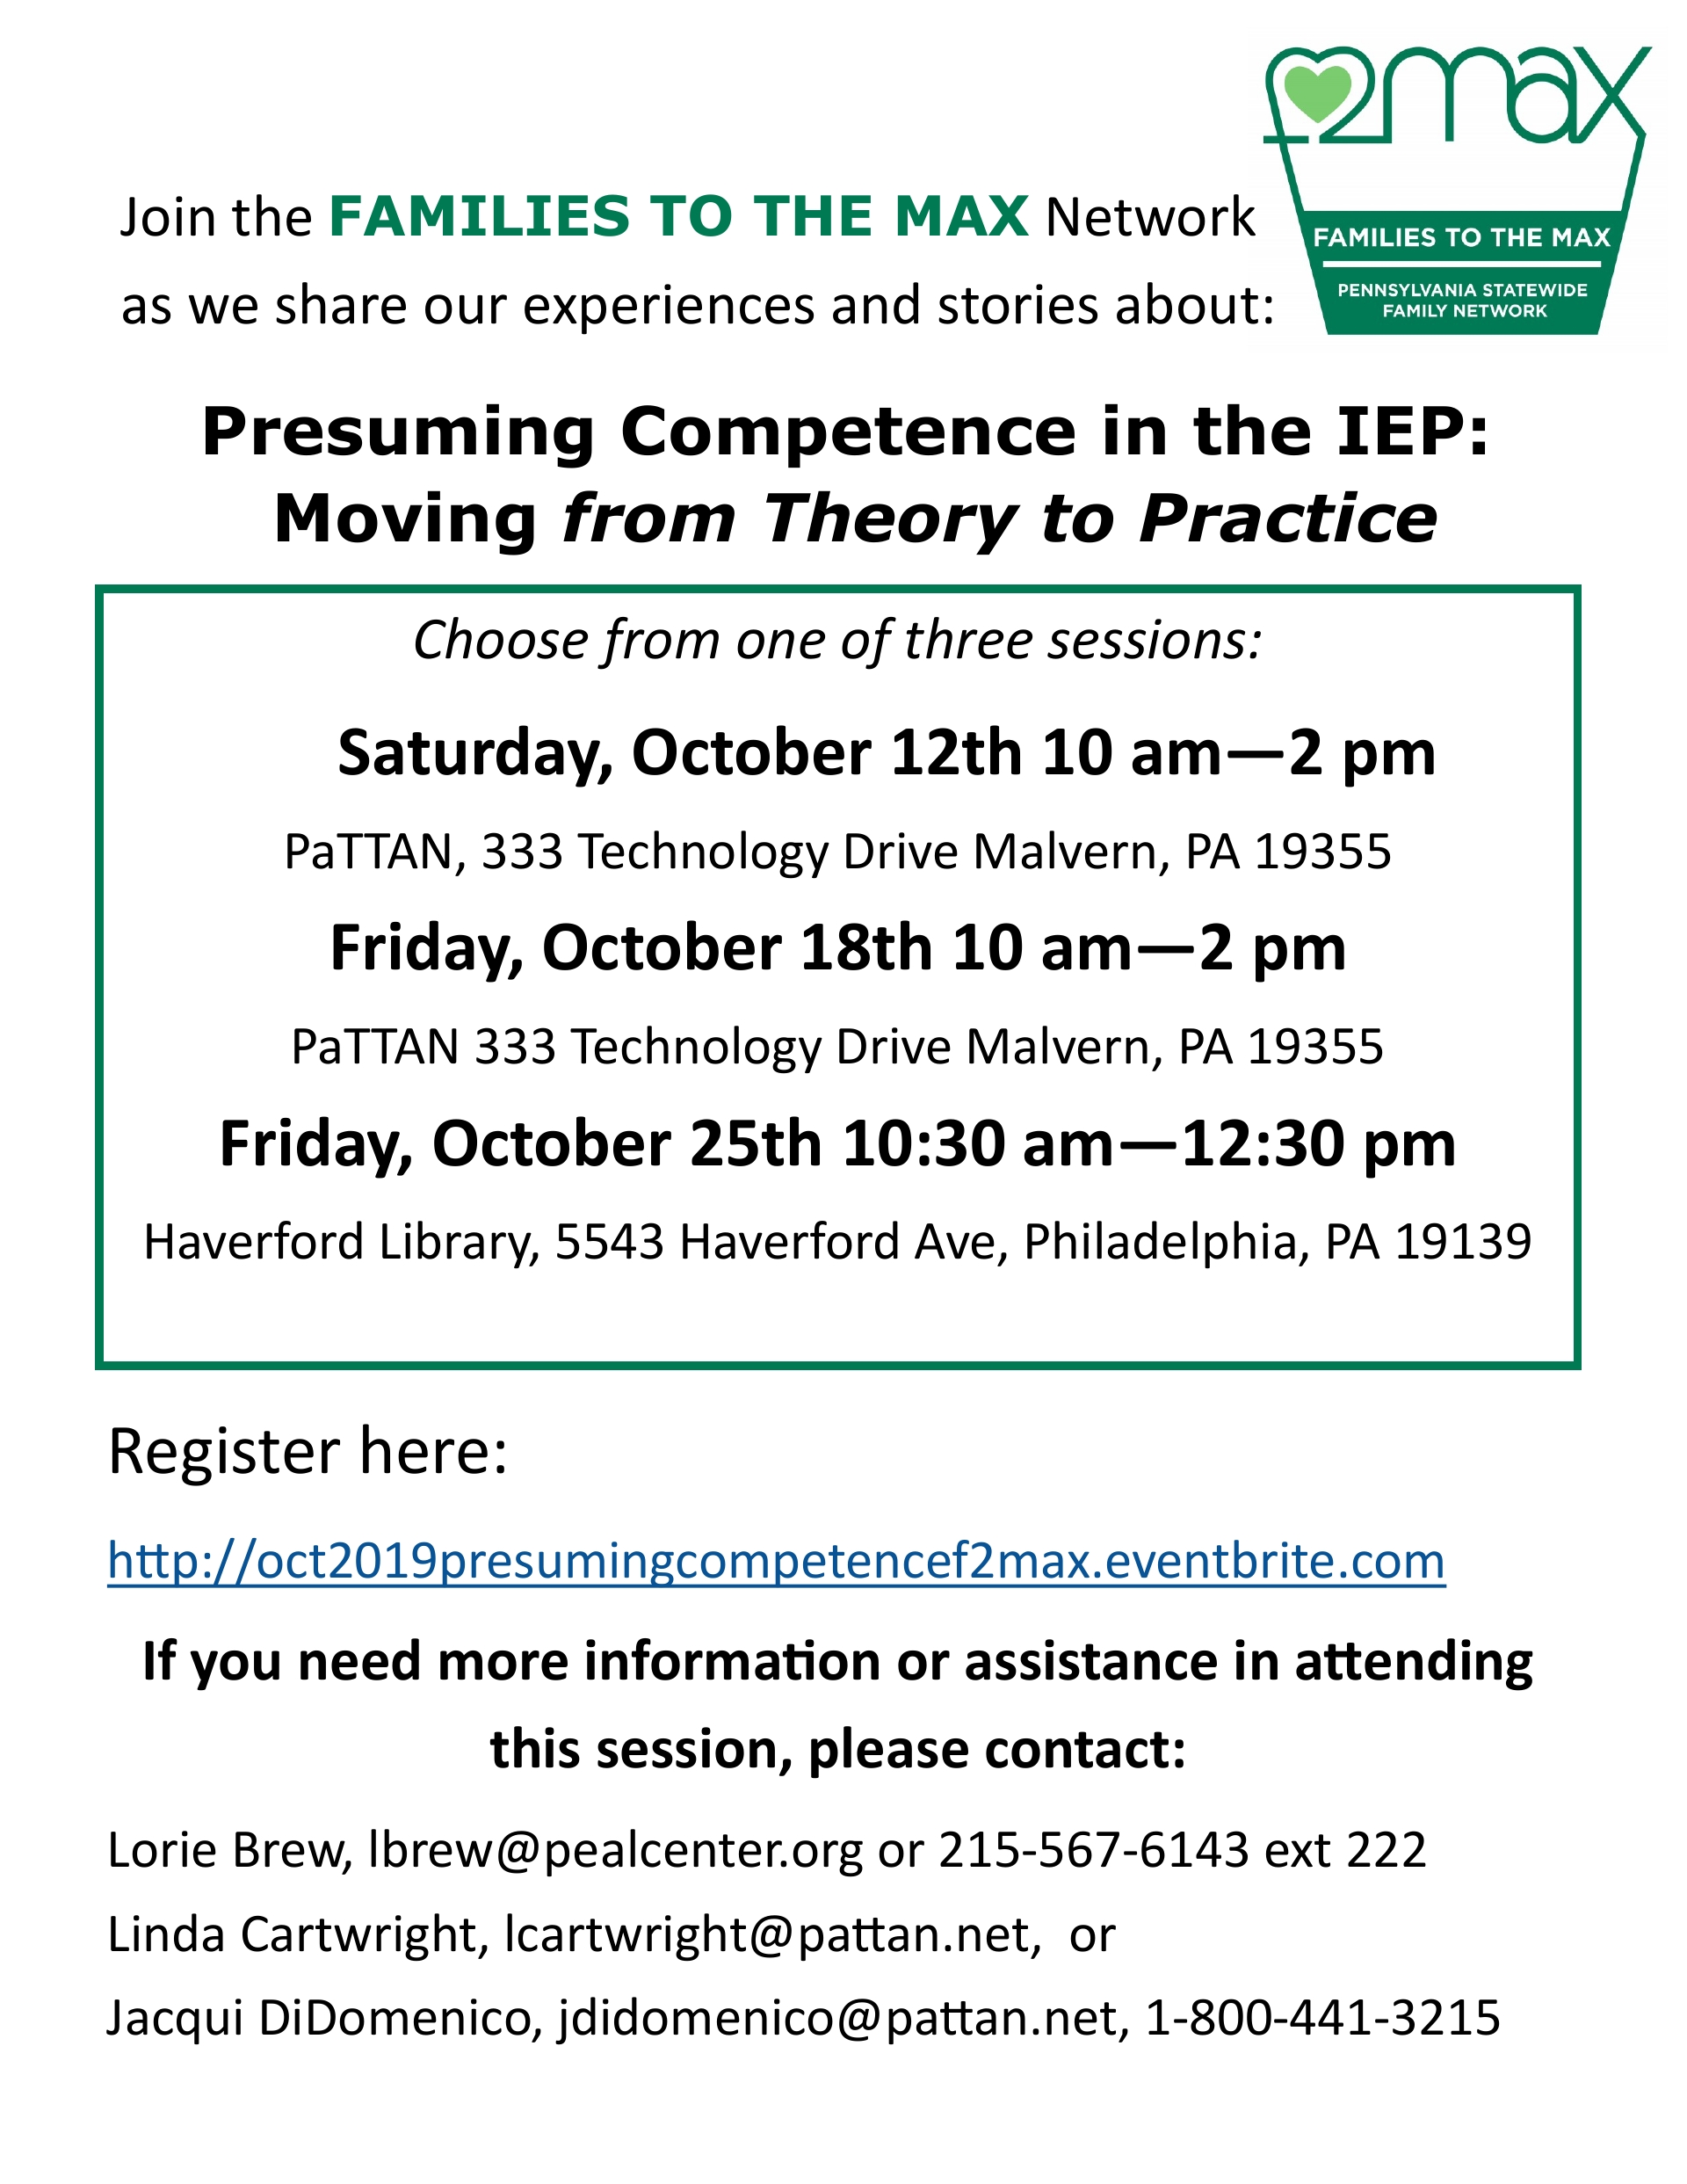 IEP TRAINING: Presuming Competence in the IEP: Moving from Theory to Practice